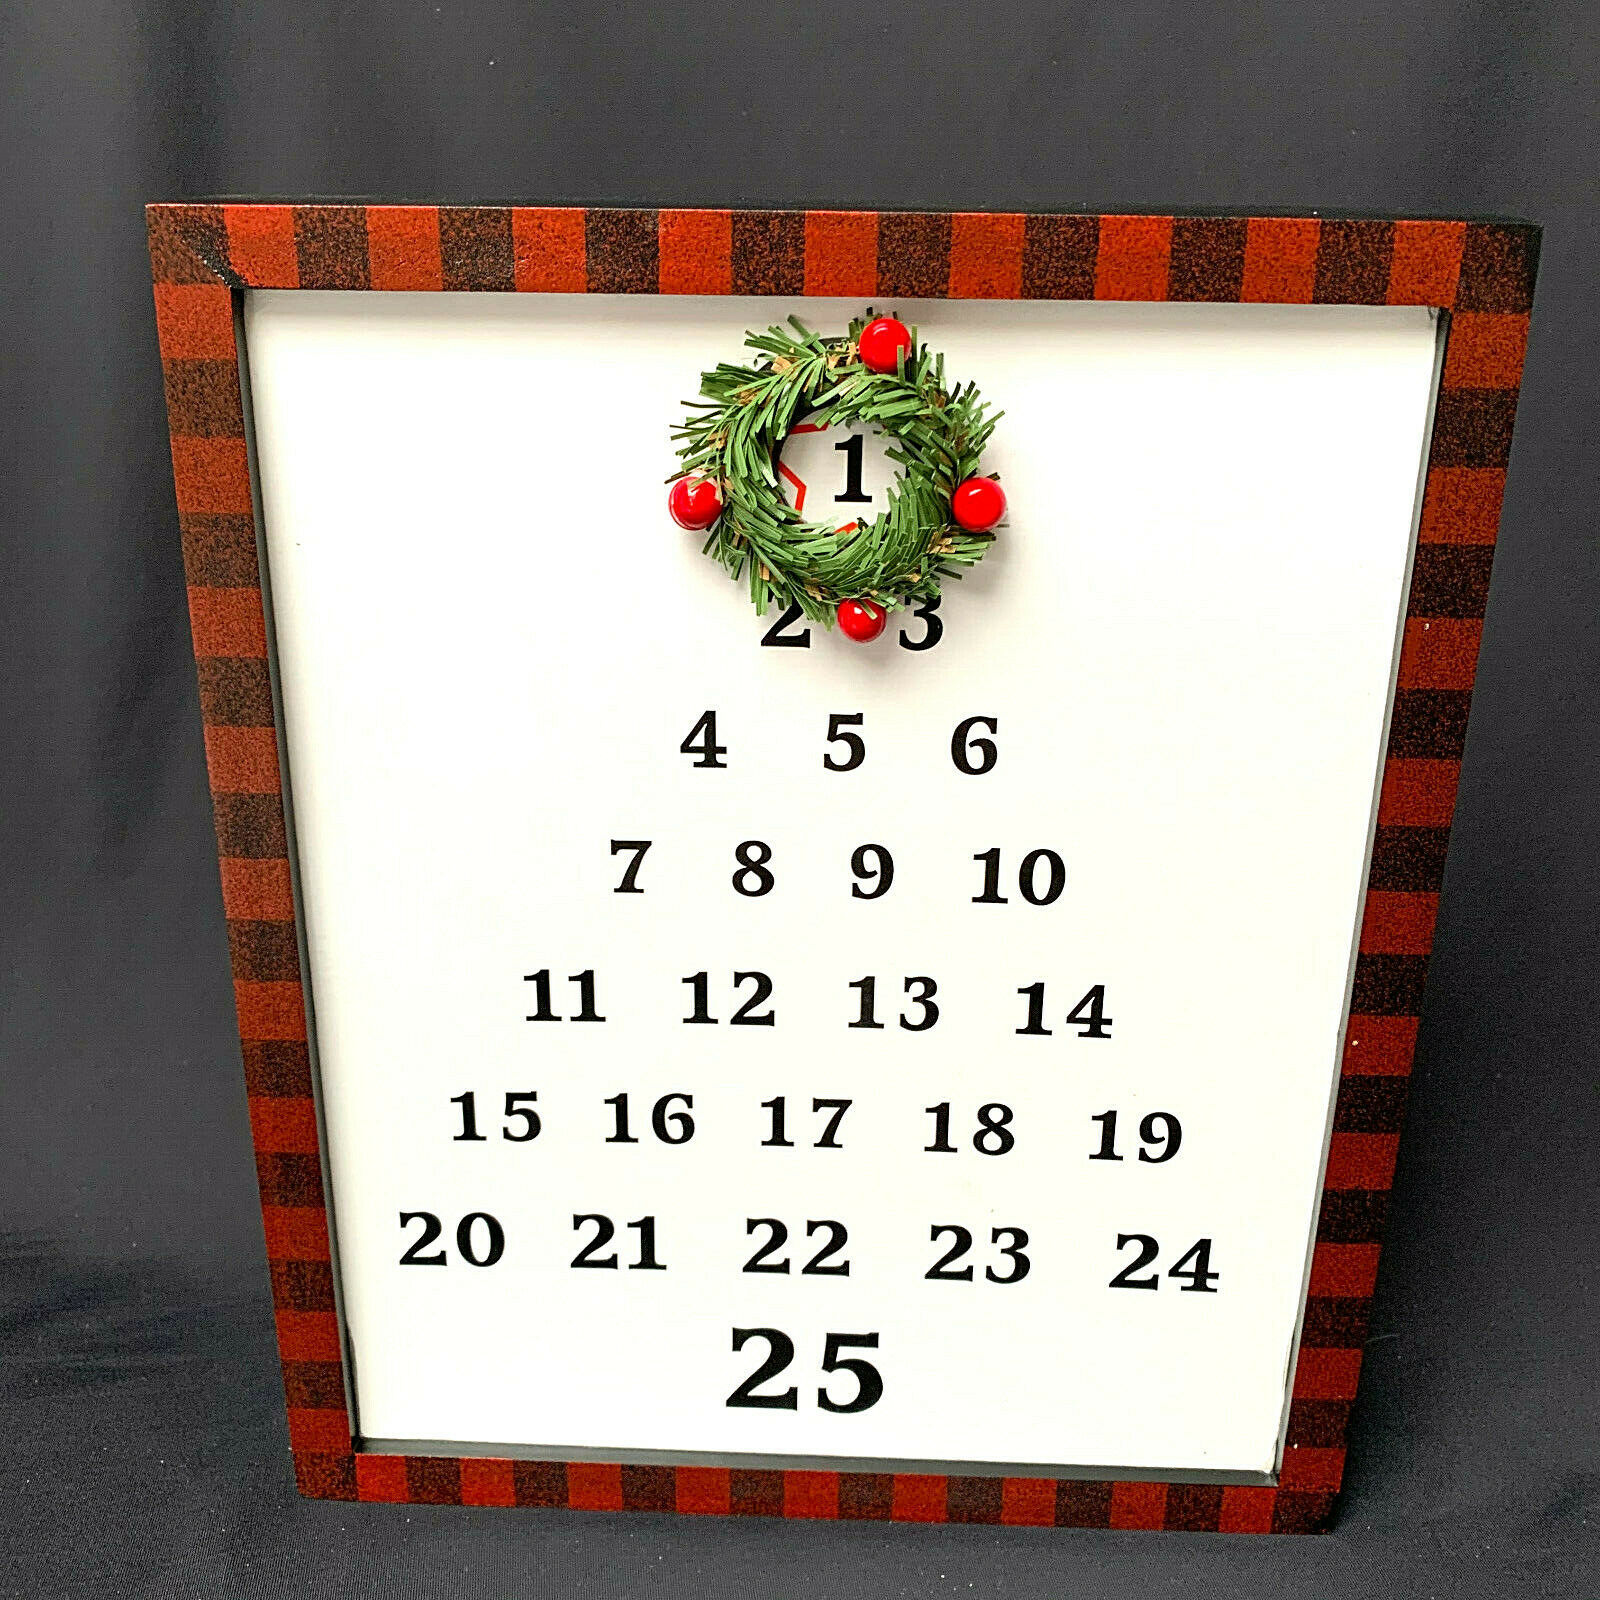 Primary image for Magnetic Christmas Tree Calander Wreath Red Black Trim On Frame